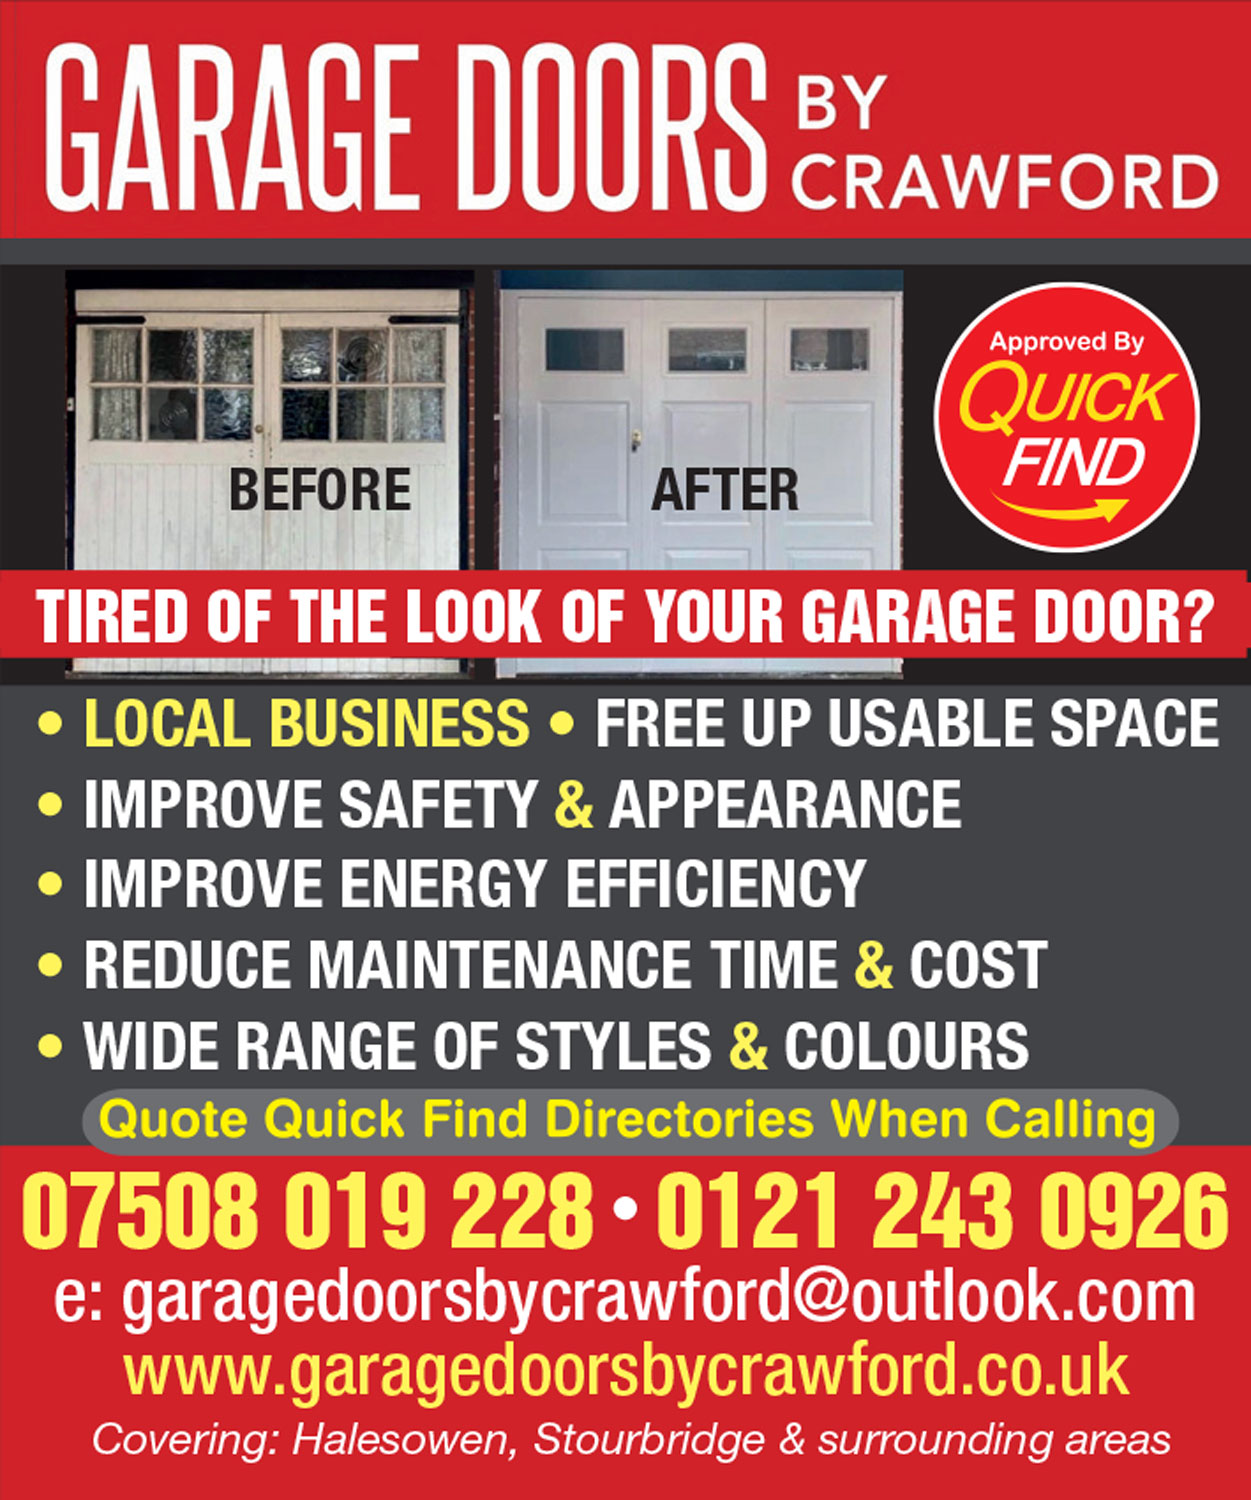 Garage Doors by Crawford